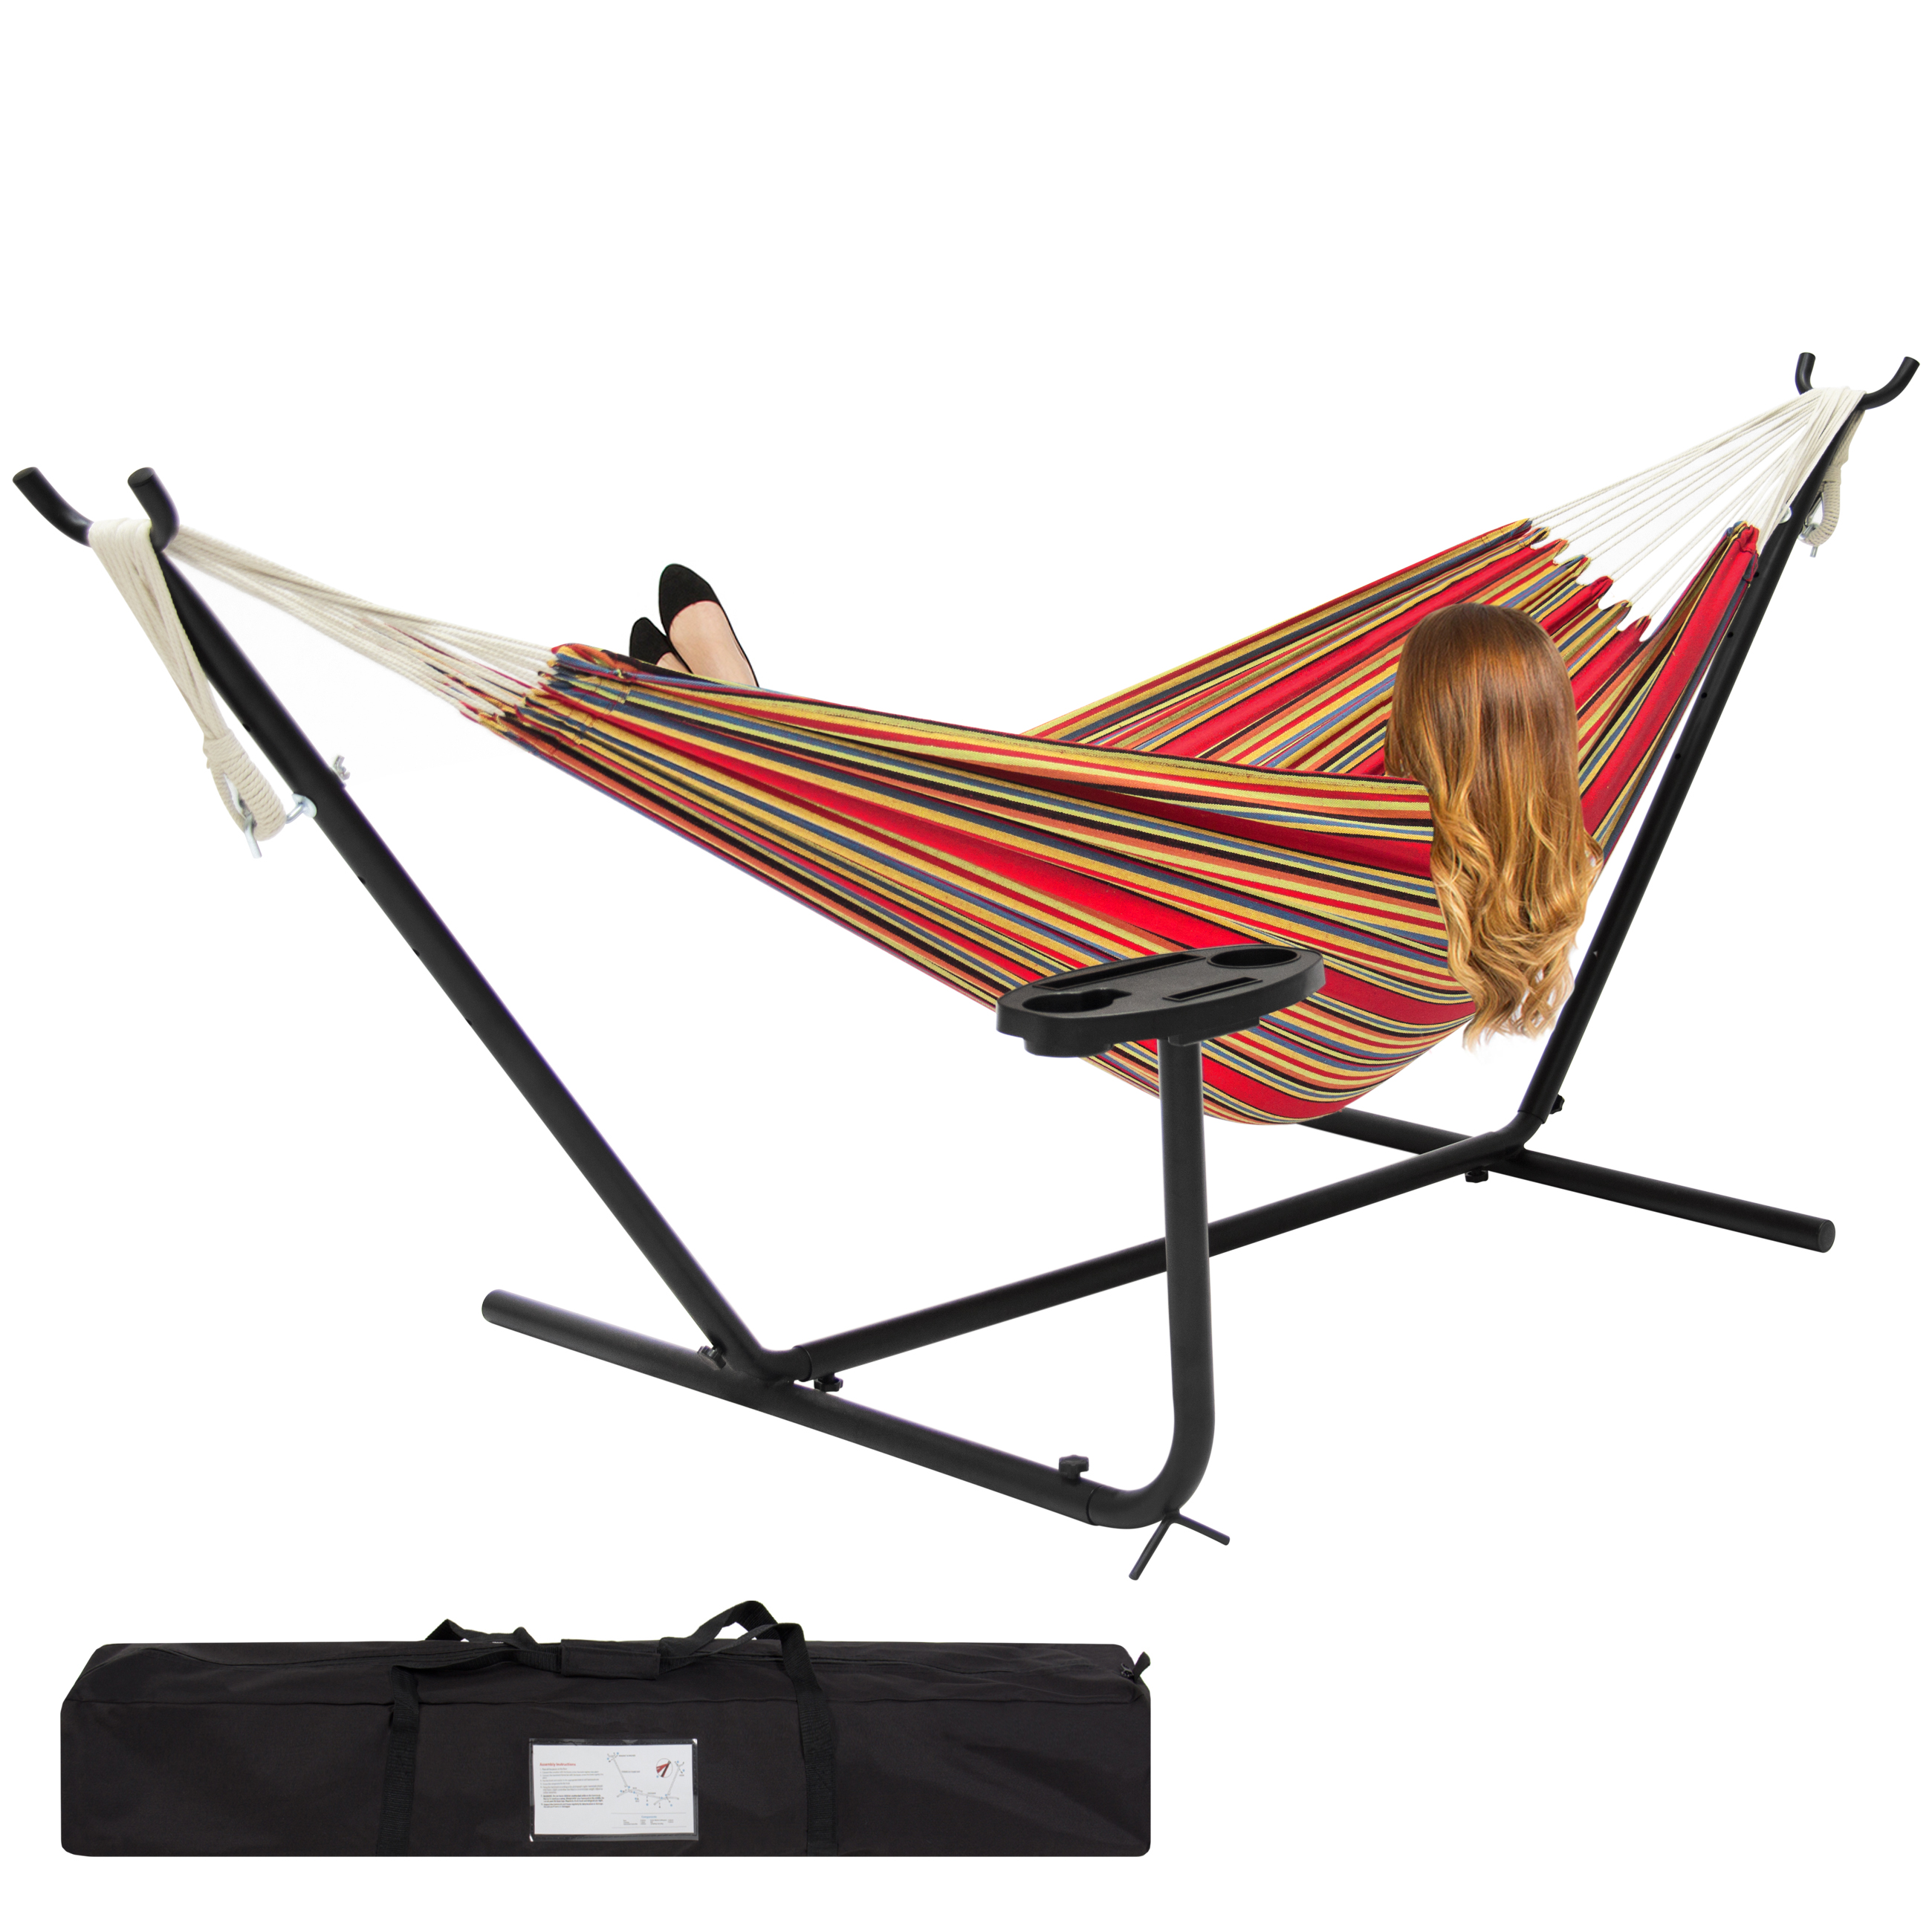 Best Choice Products Double Hammock Set w/ Accessories - Red Stripe